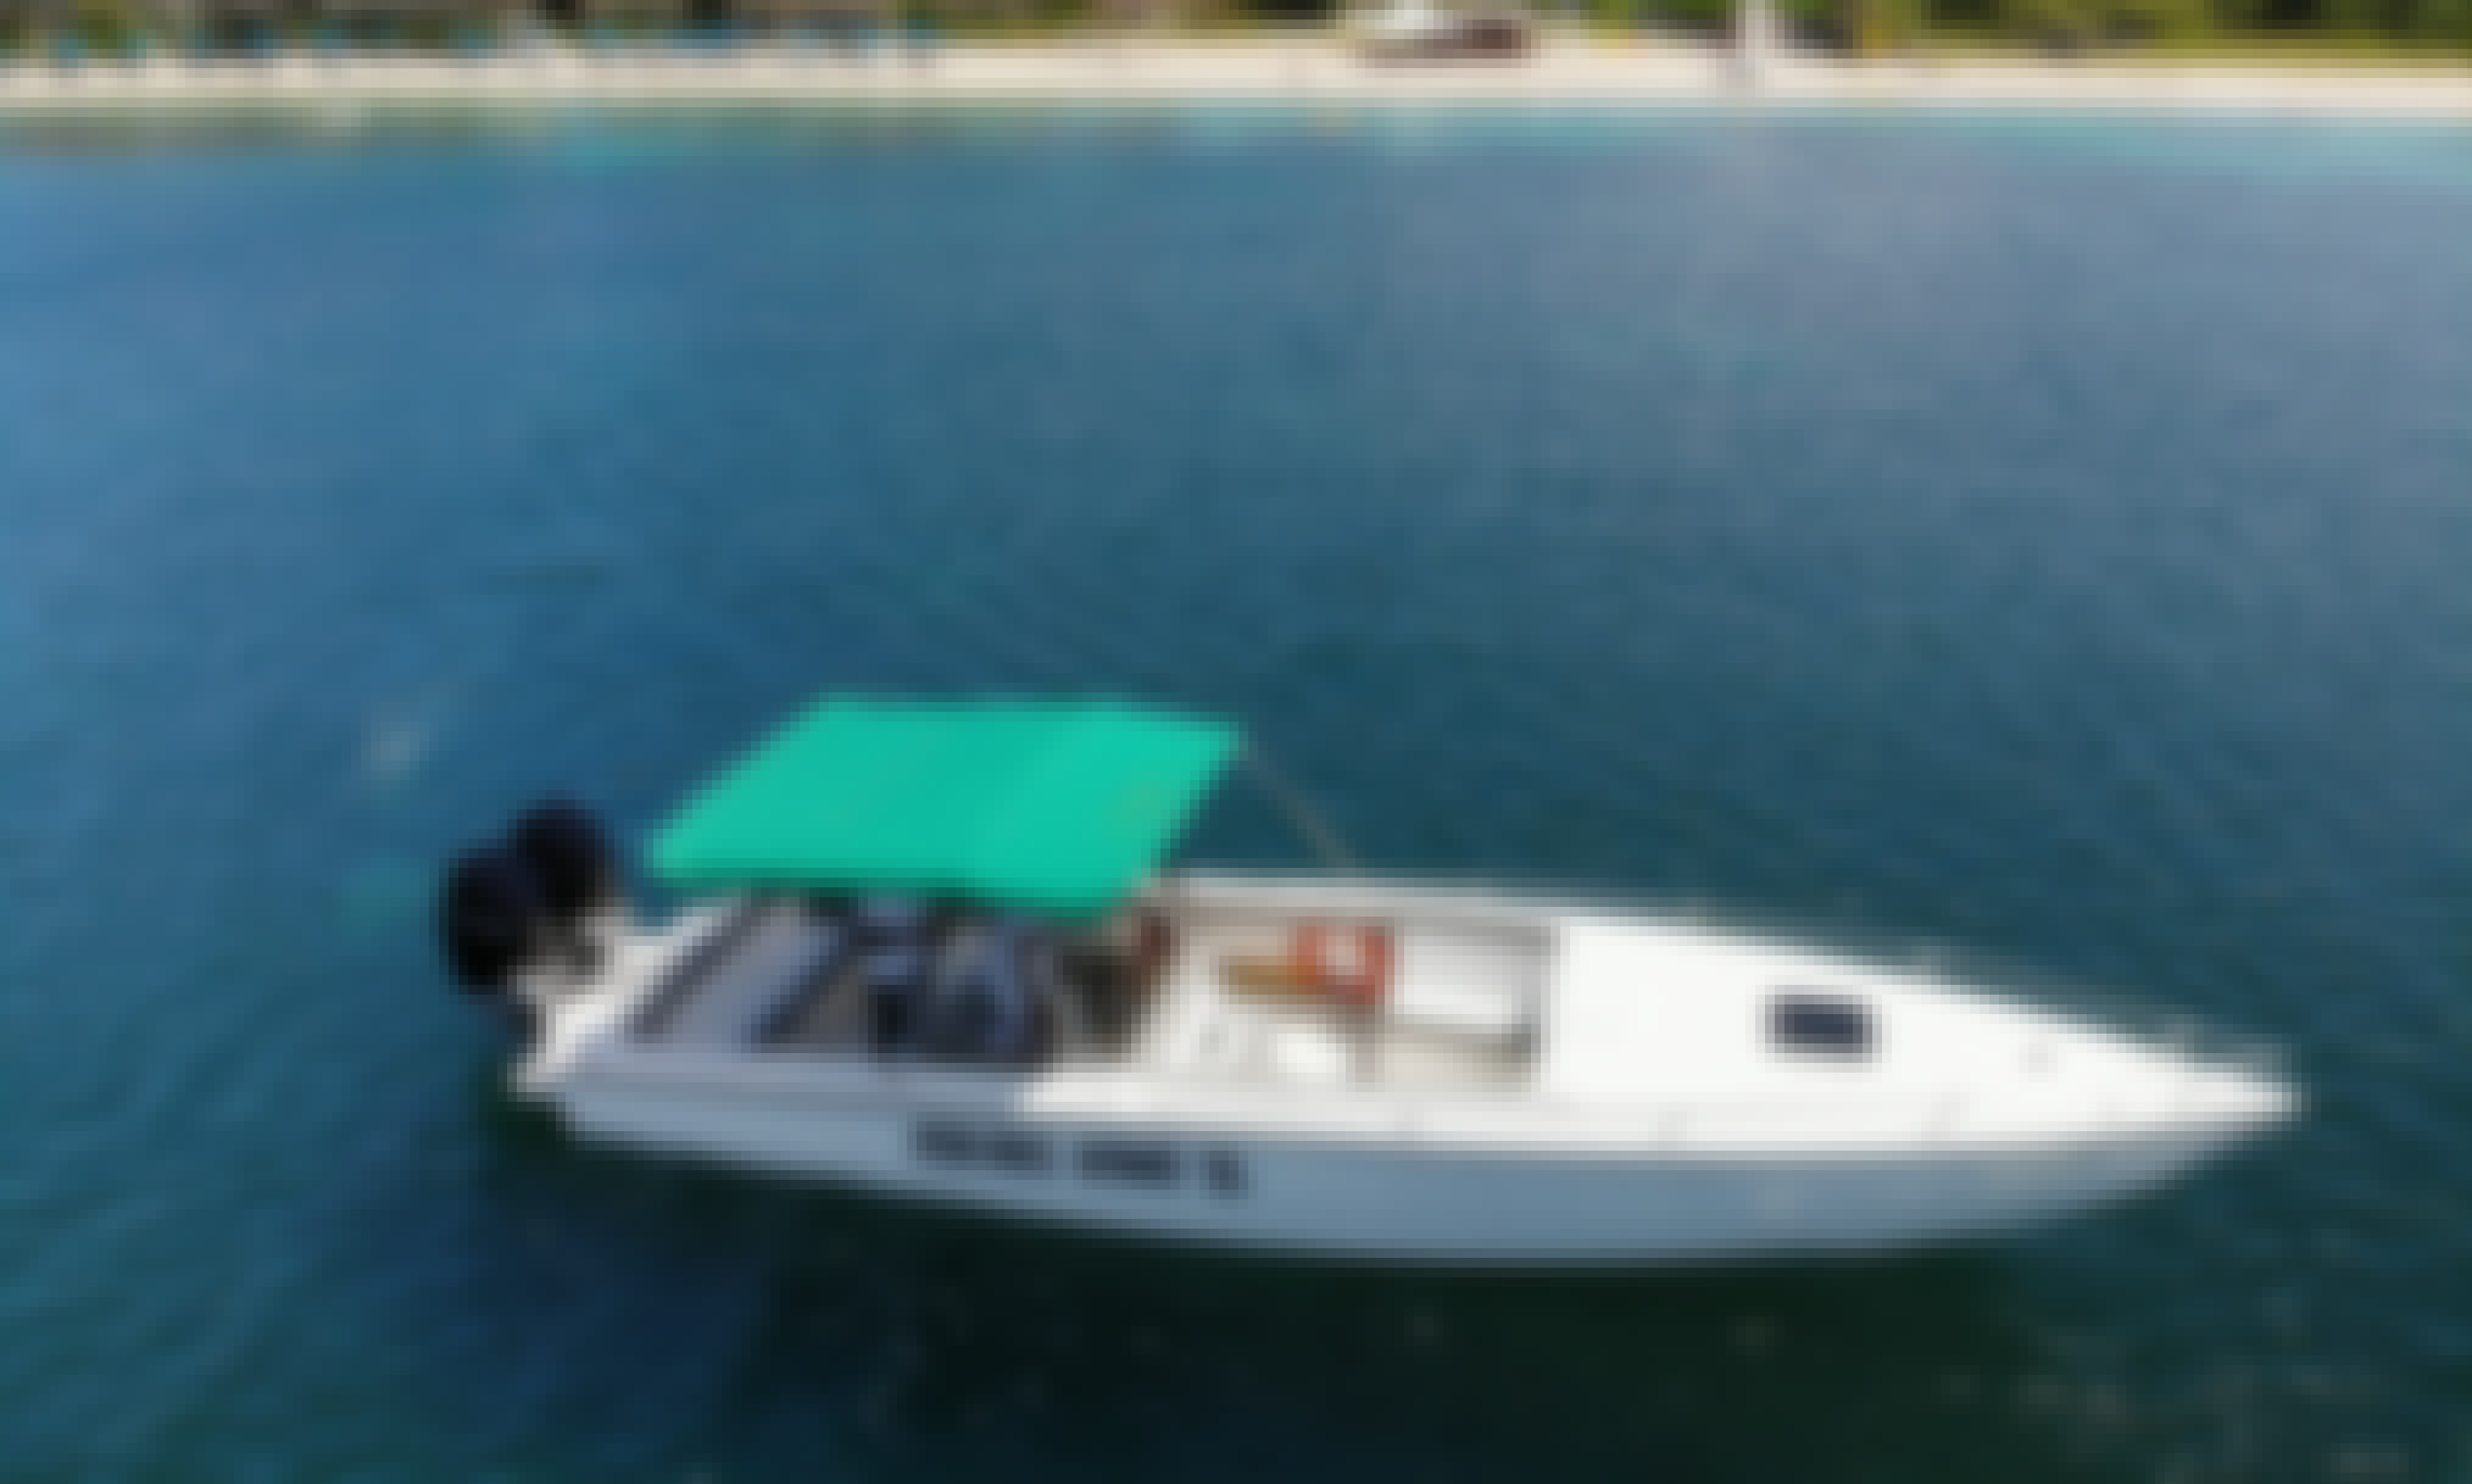 Full Day Private Speedboat Charter for Up to 12 People Saint Lucia, BVI